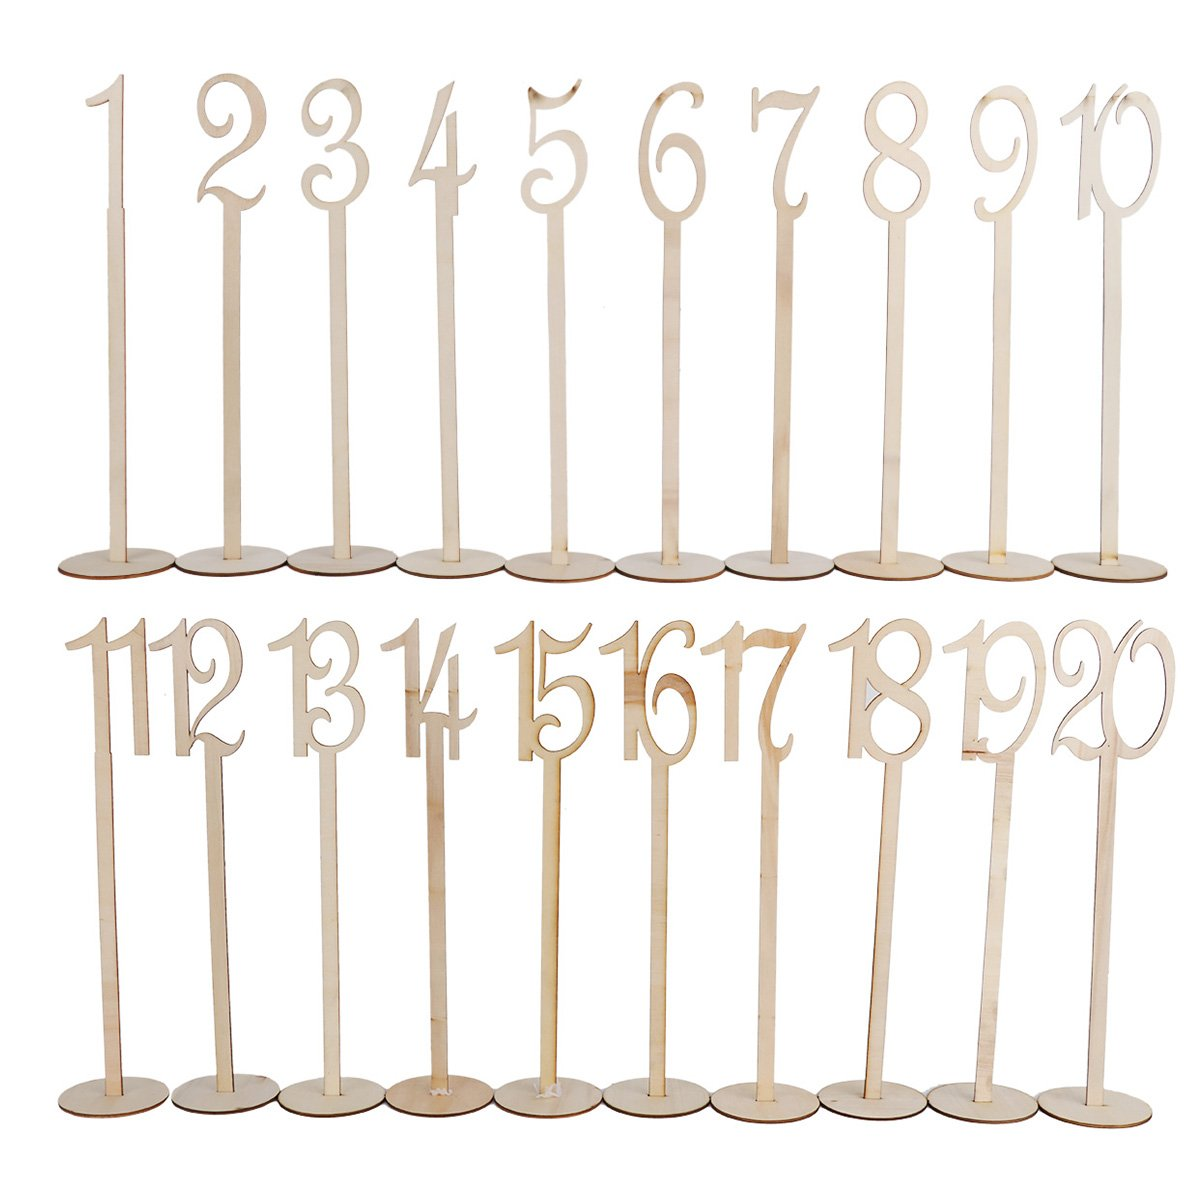 Freebily Table Number Holders, 1-20 Generic Wooden Table Decoration for Wedding Birthday Party Hotel